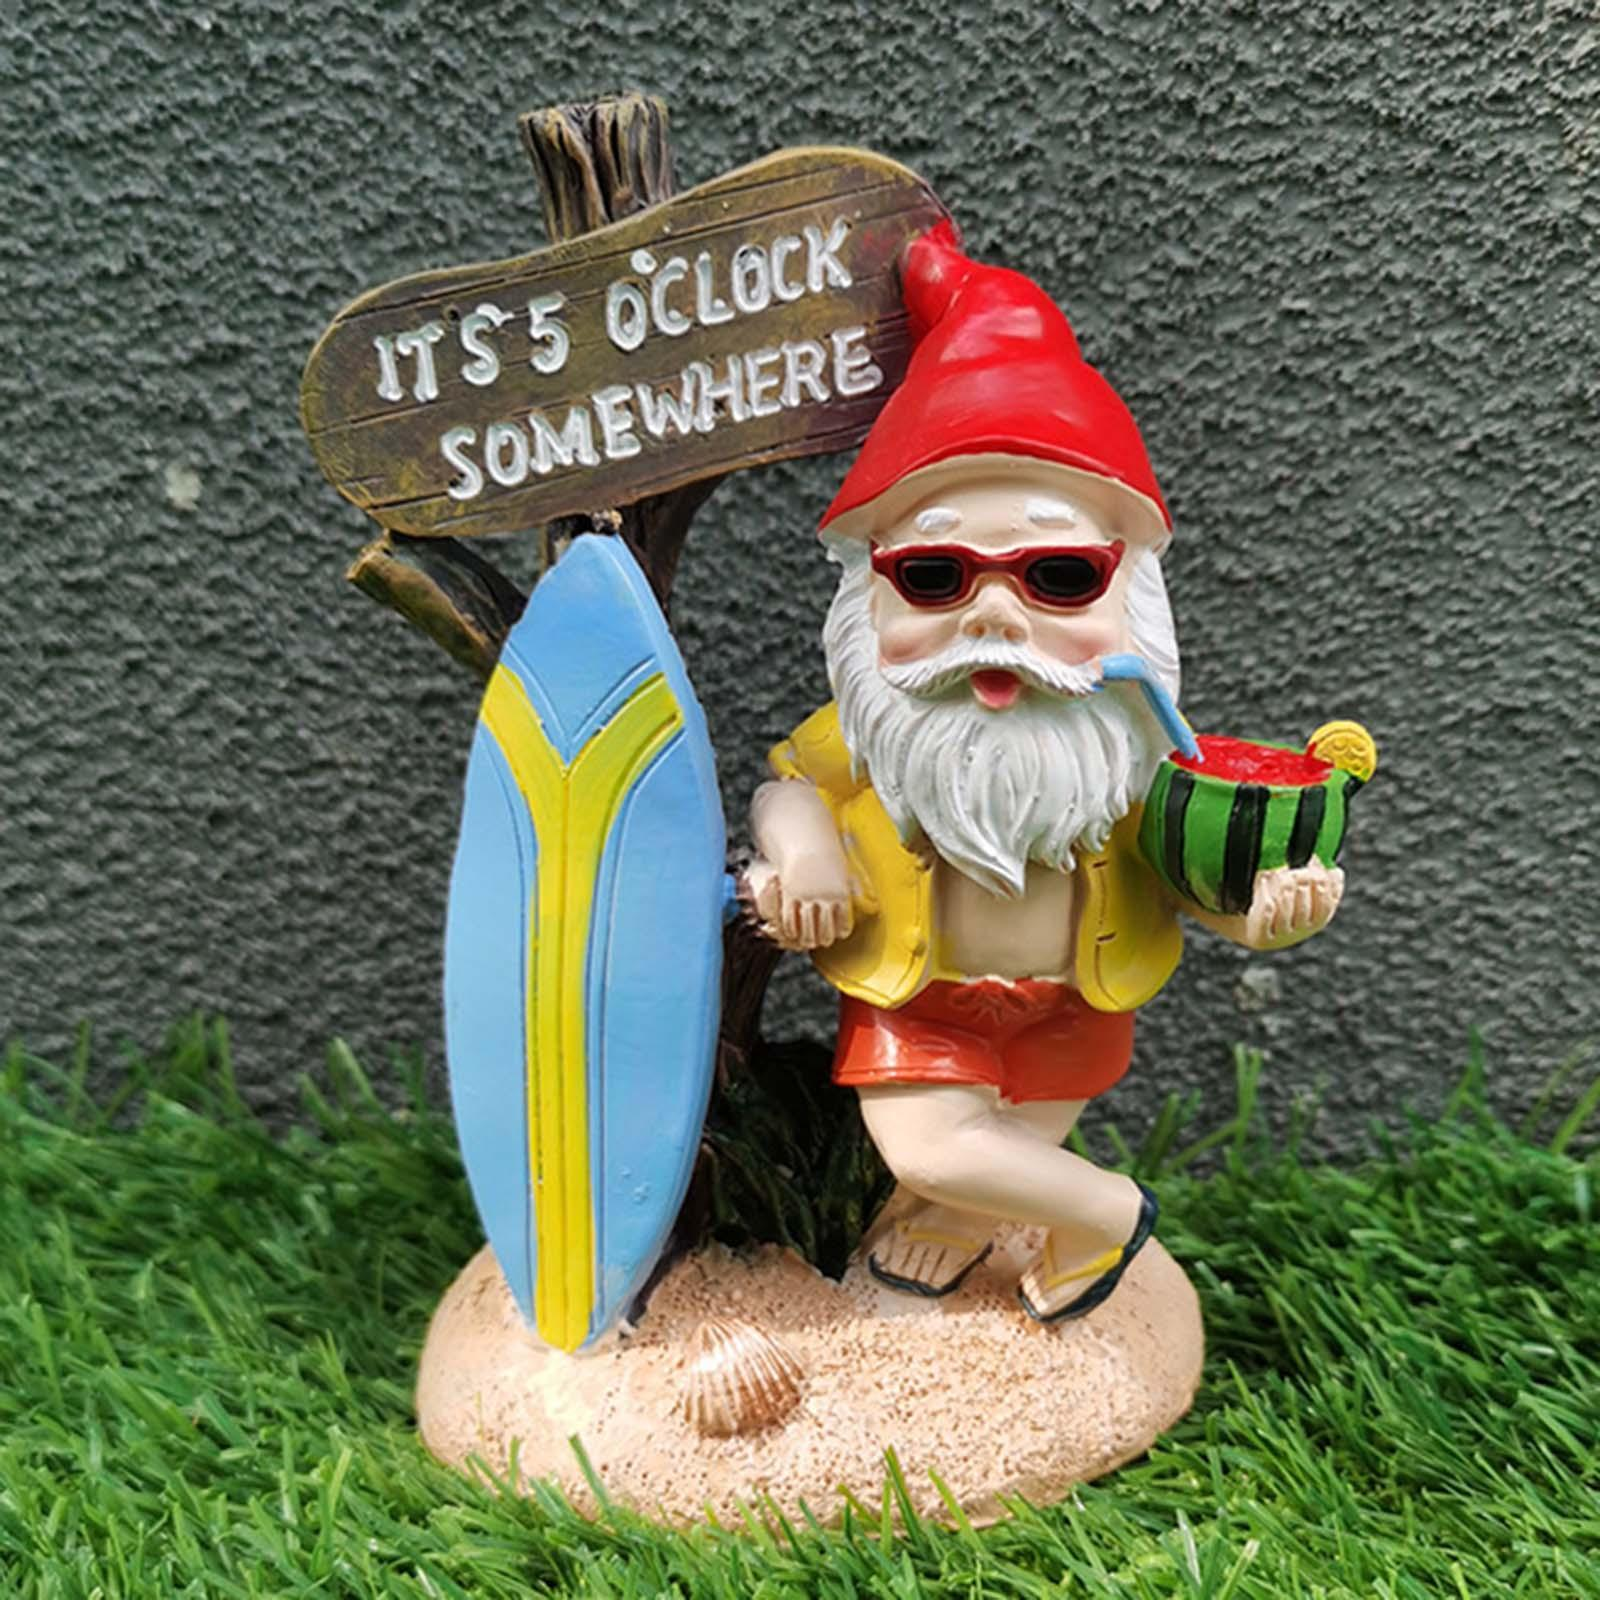 thumbnail 12 - Funny Resin Naughty Garden Gnome Statue Ornaments Villa Home Figurines